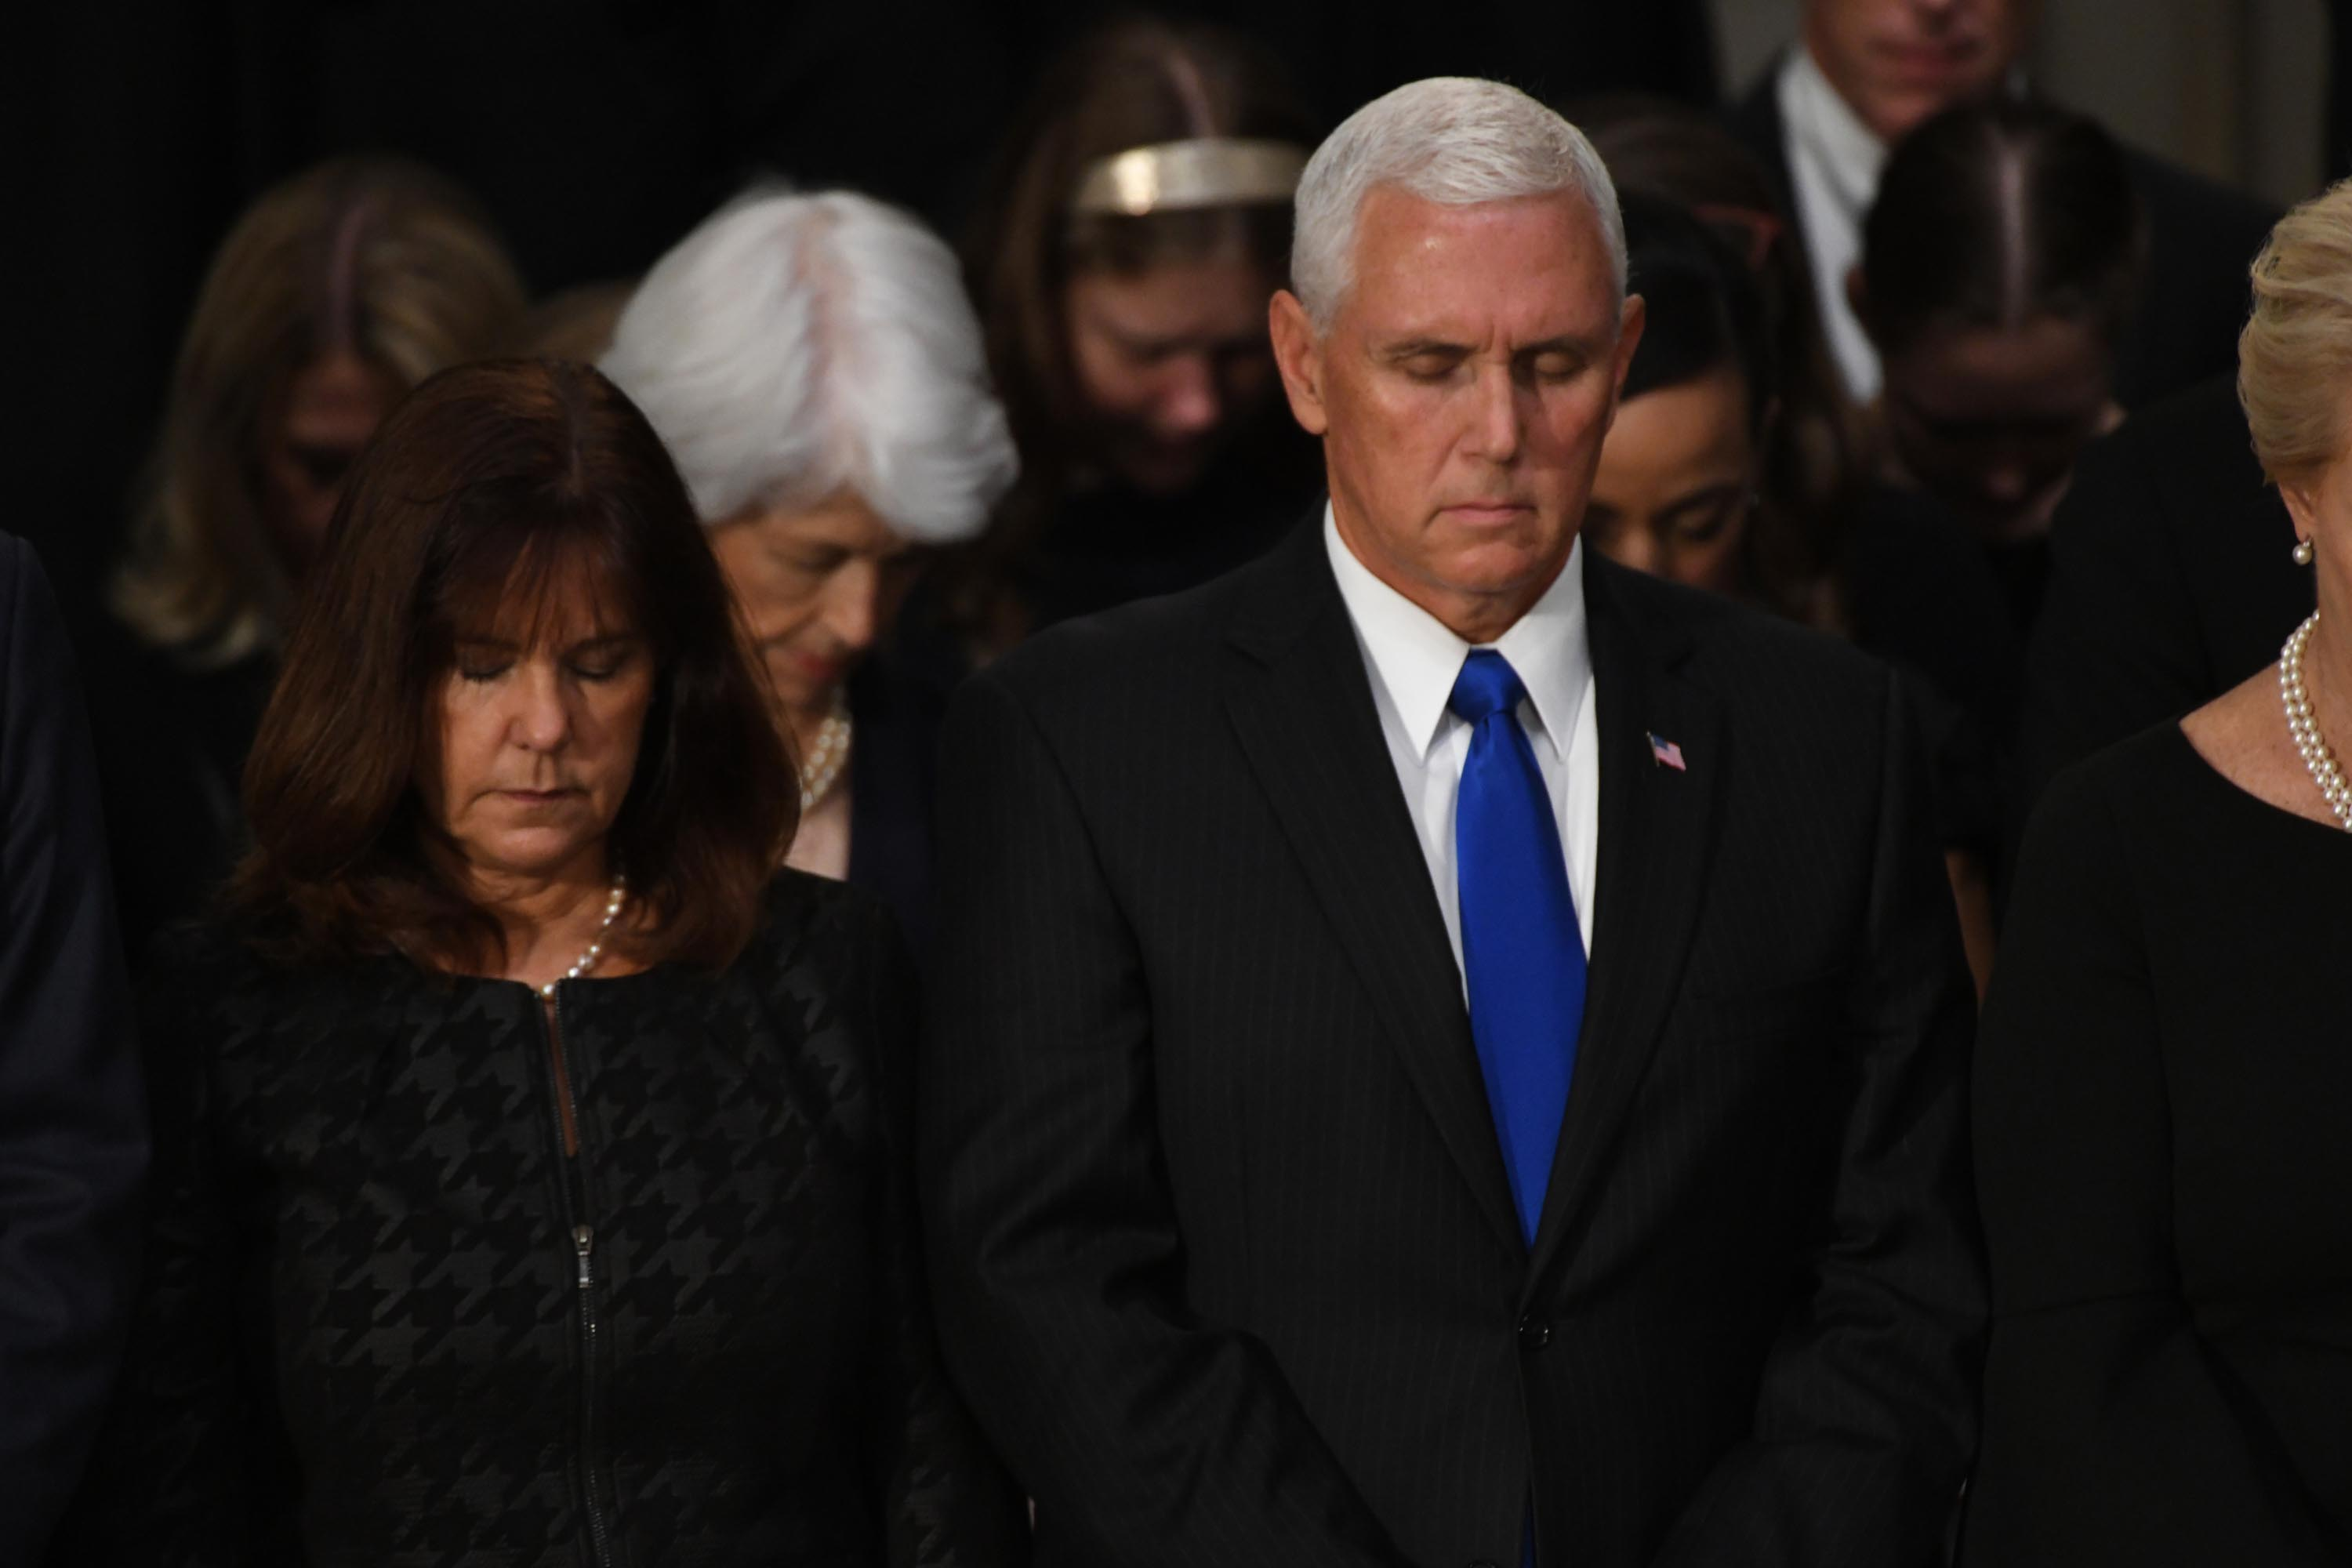 Vice President Mike Pence quotes Bible in response to being called 'Christian supremacist'